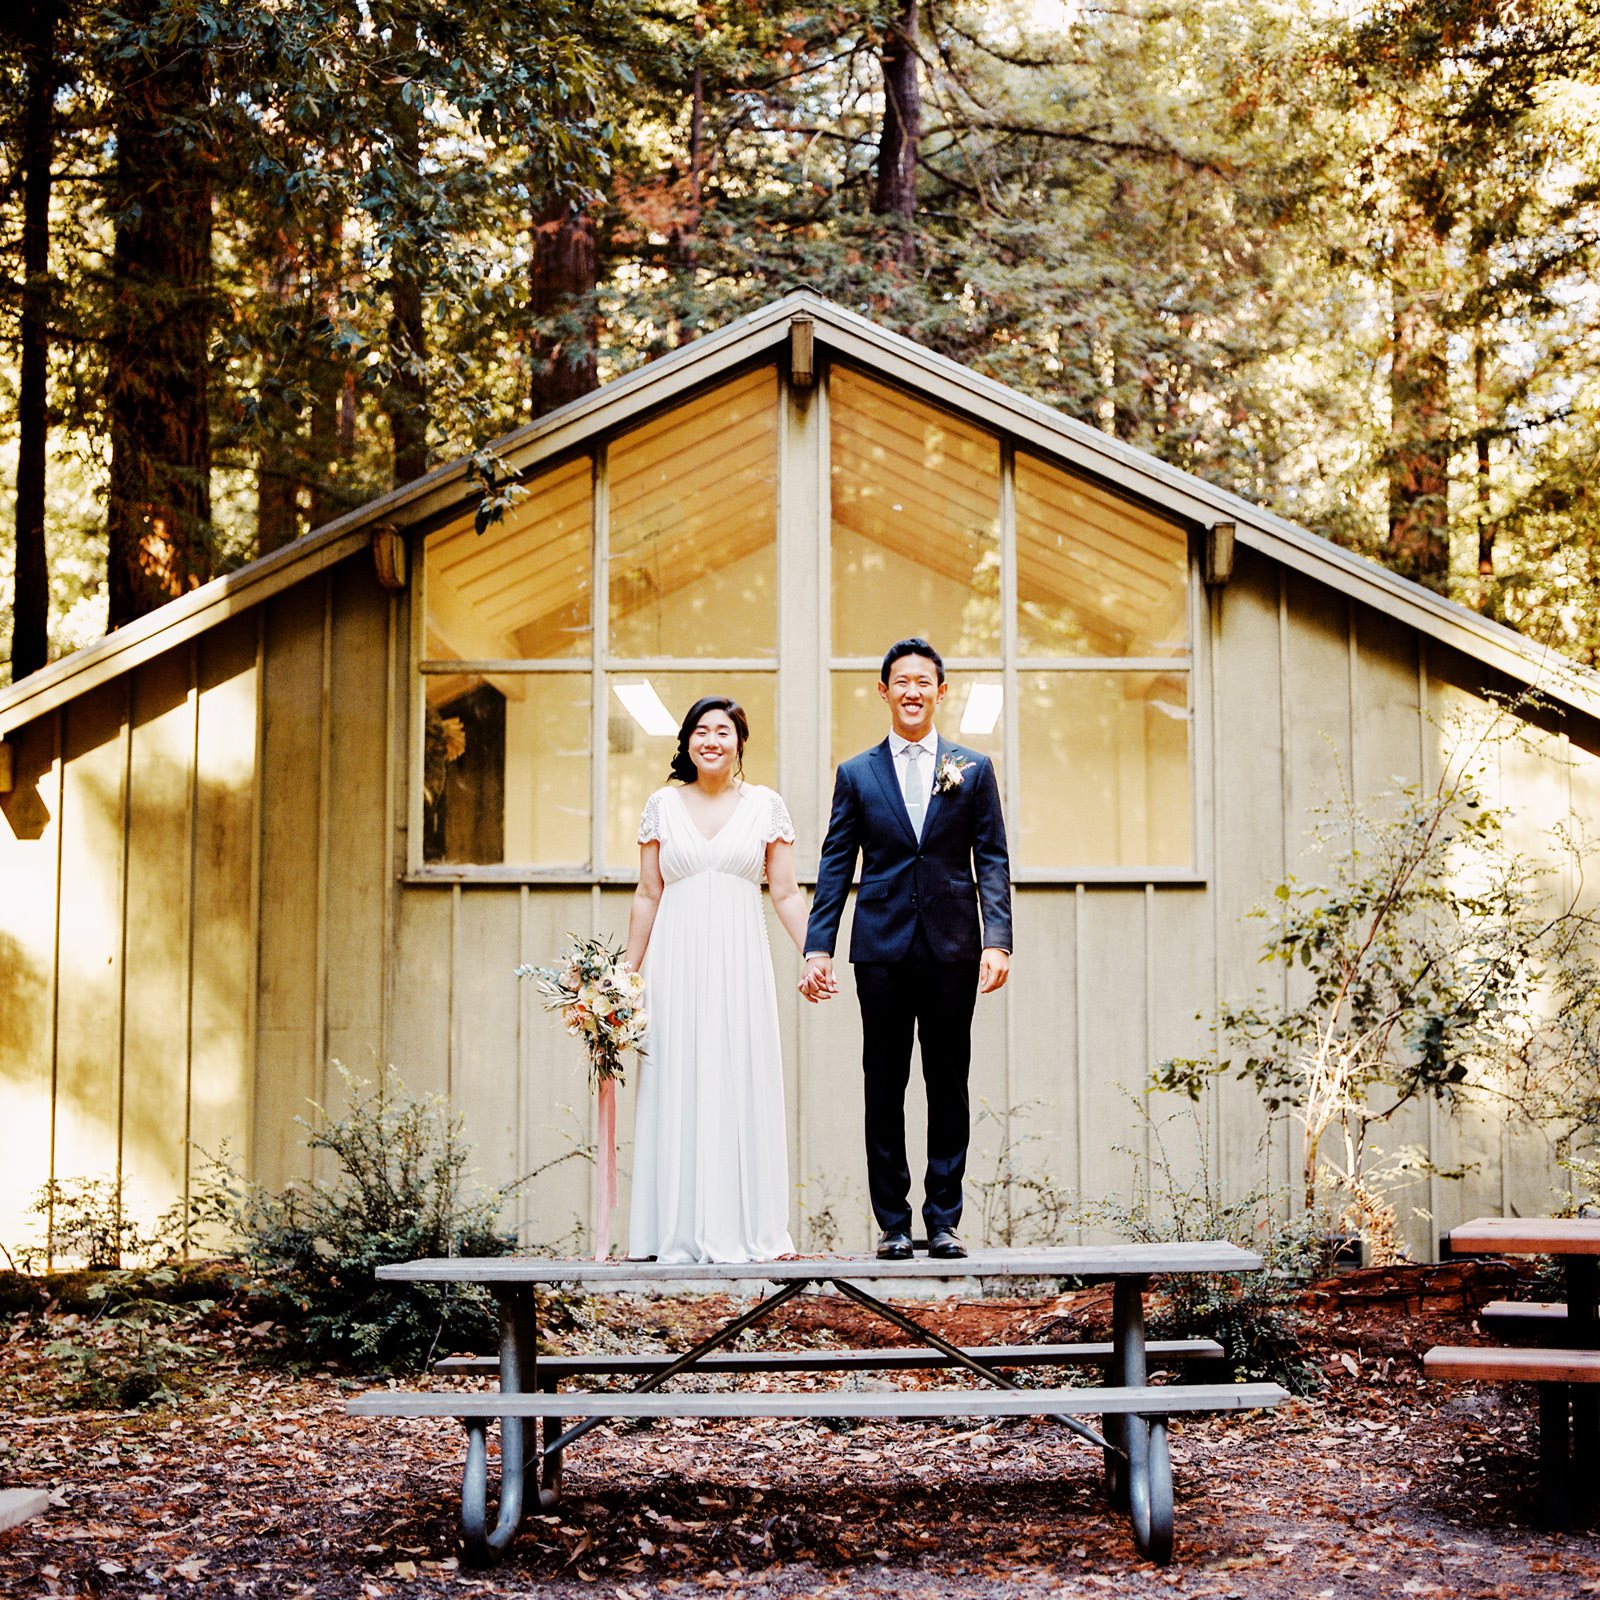 kimclay-blog-012 REDWOOD FOREST WEDDING